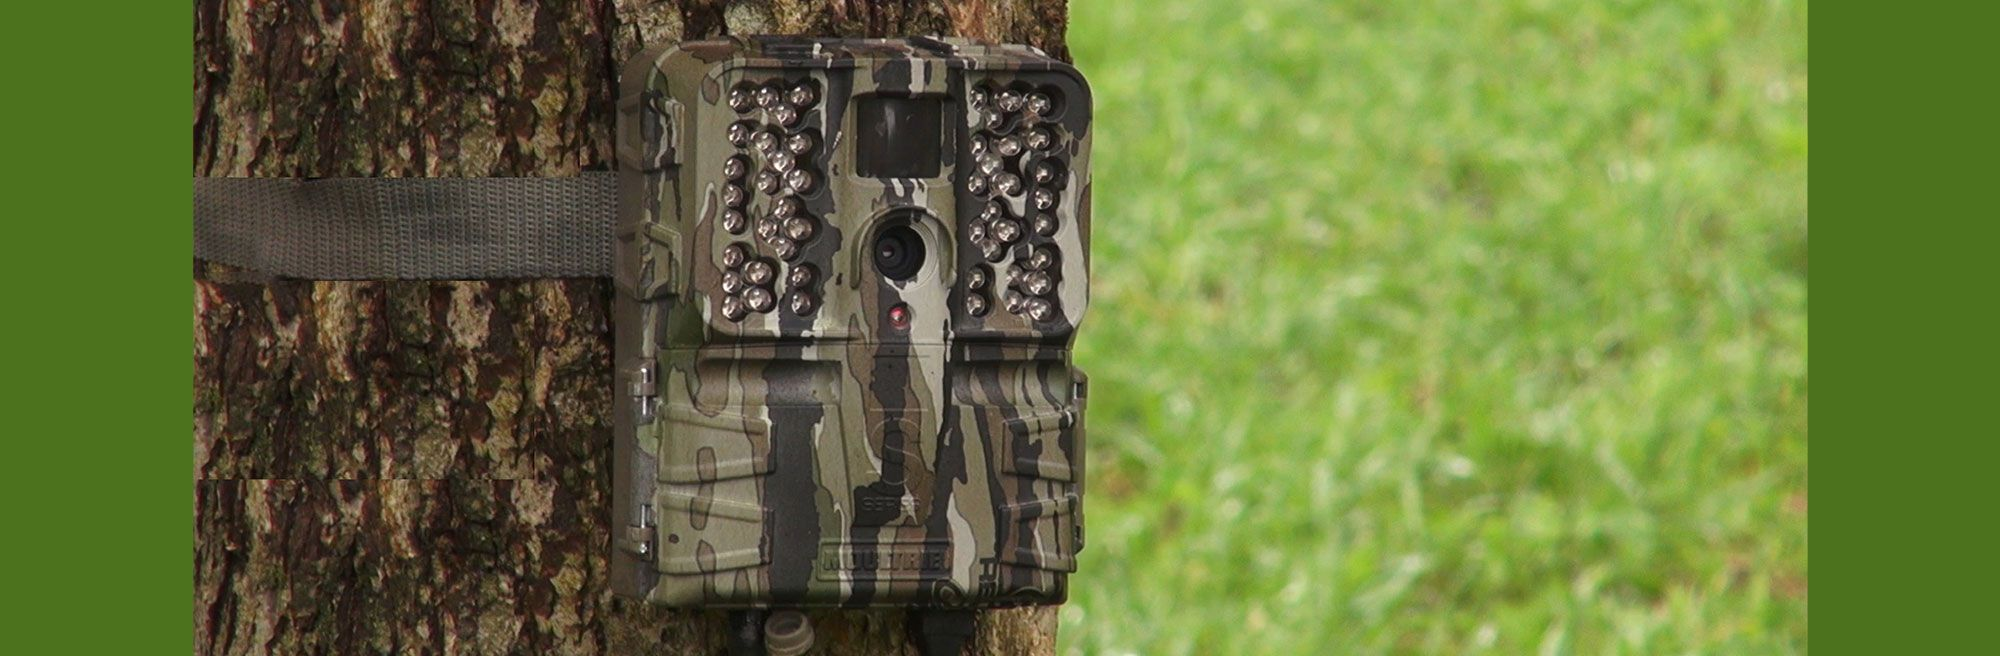 Moultrie A-30 (2017) Game Camera